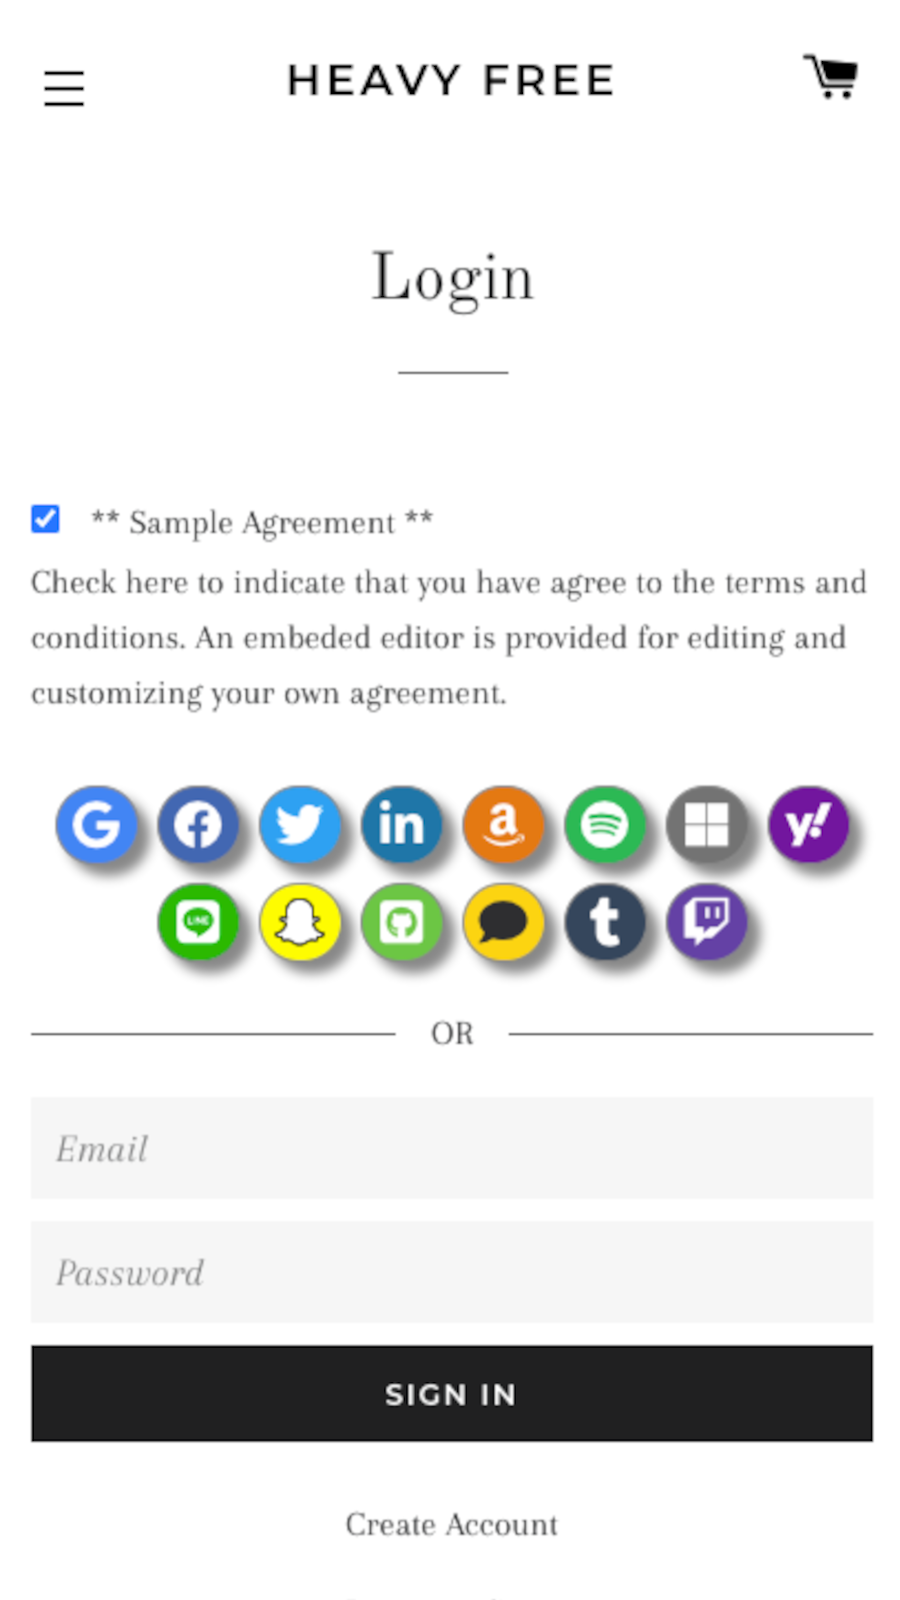 Display custom terms and privacy agreement.